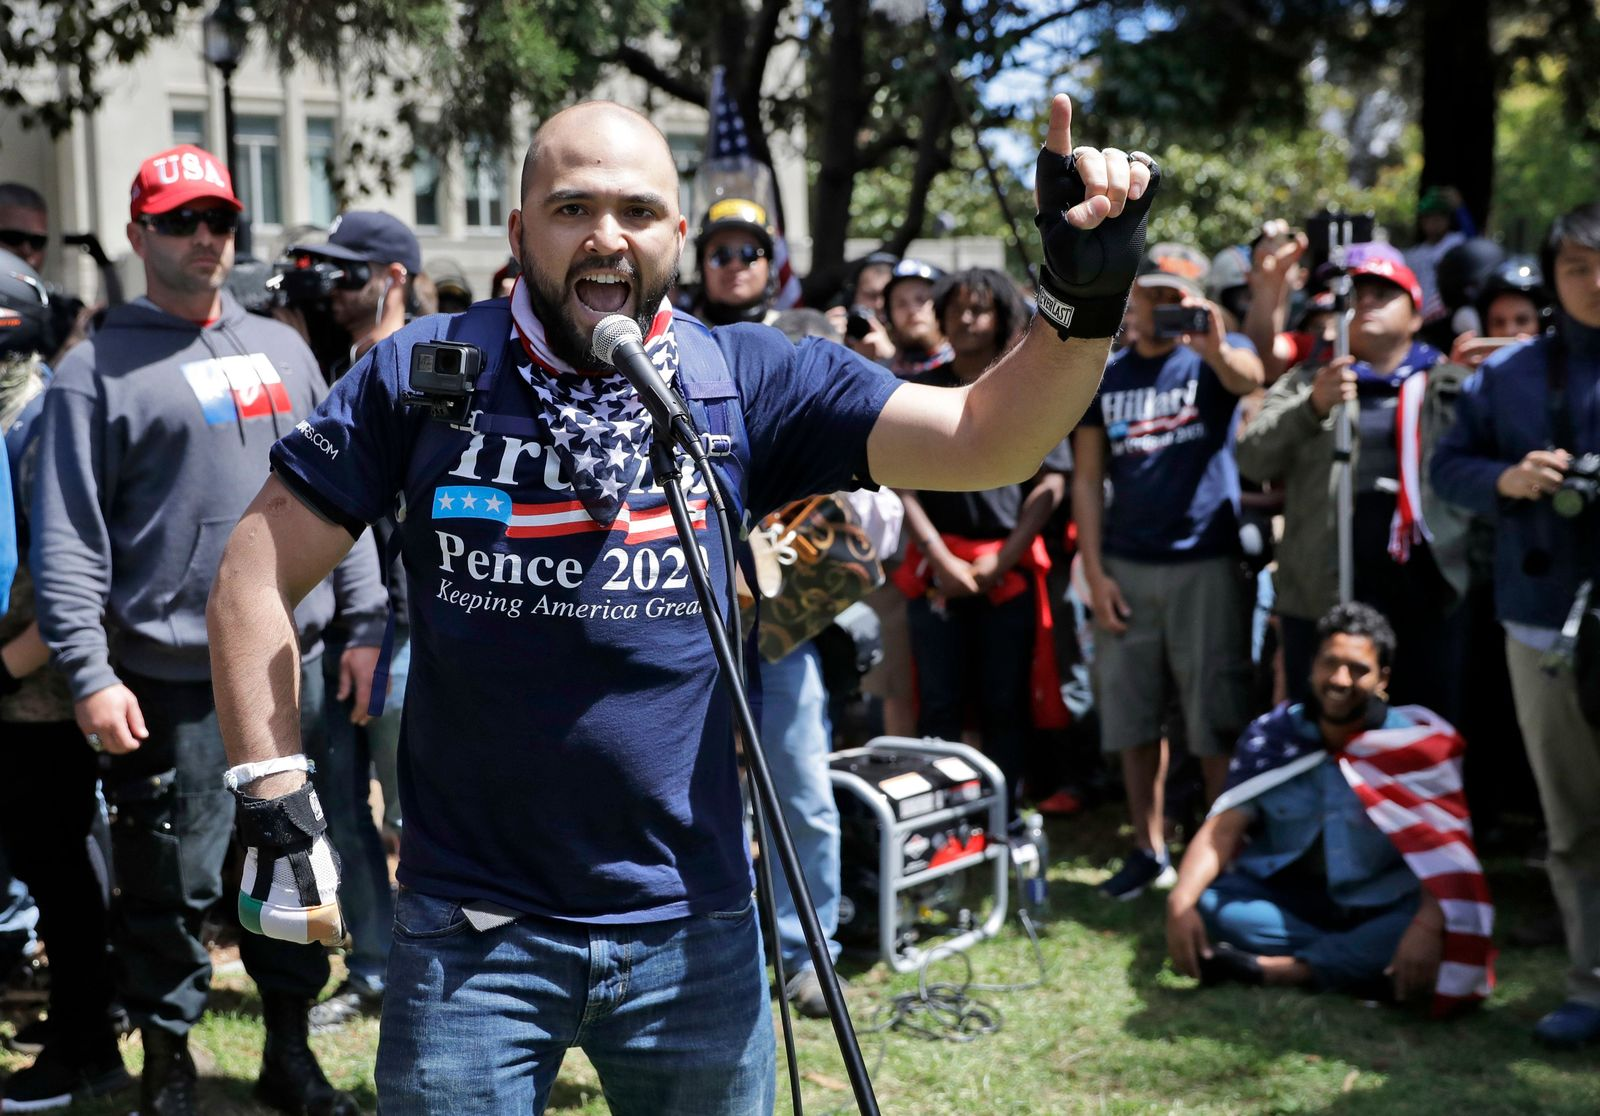 "In this April 27, 2017, file photo, right wing group Patriot Prayer leader Joey Gibson speaks during a rally in support of free speech in Berkeley, Calif. The conflict between Patriot Prayer and the so-called ""antifa"" has dominated the landscape at marches and rallies in Portland, Ore., in recent months, creating turmoil and soul-searching in the city, a liberal bastion that also hides a dark and lesser-known history of racism dating back decades. (AP Photo/Marcio Jose Sanchez, file)"